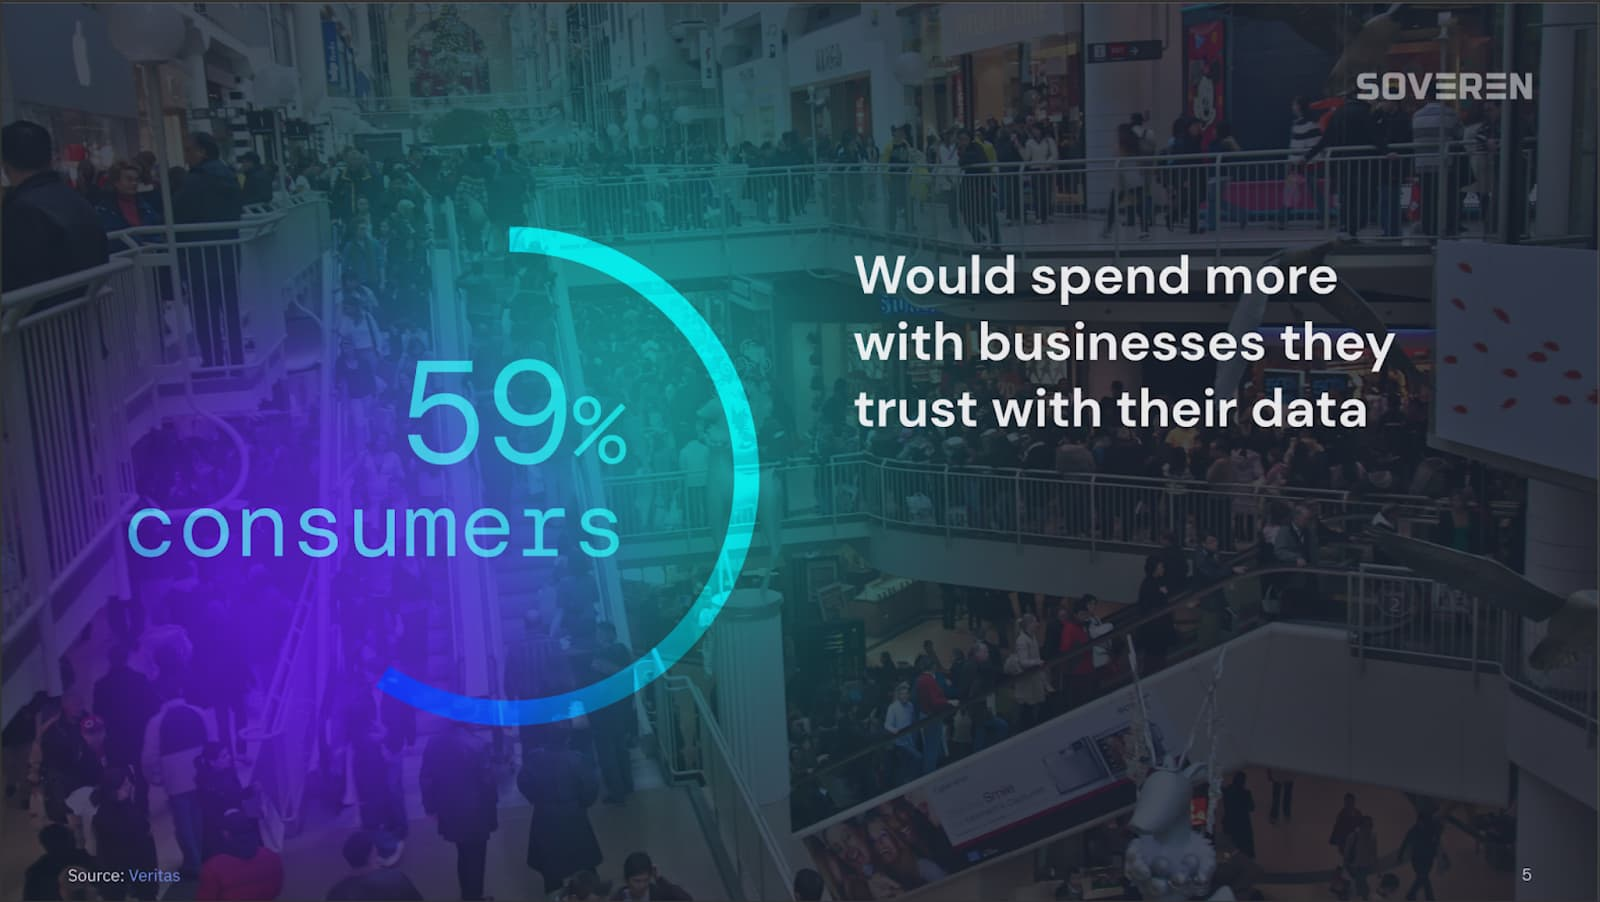 Consumers spend more with privacy-oriented firms